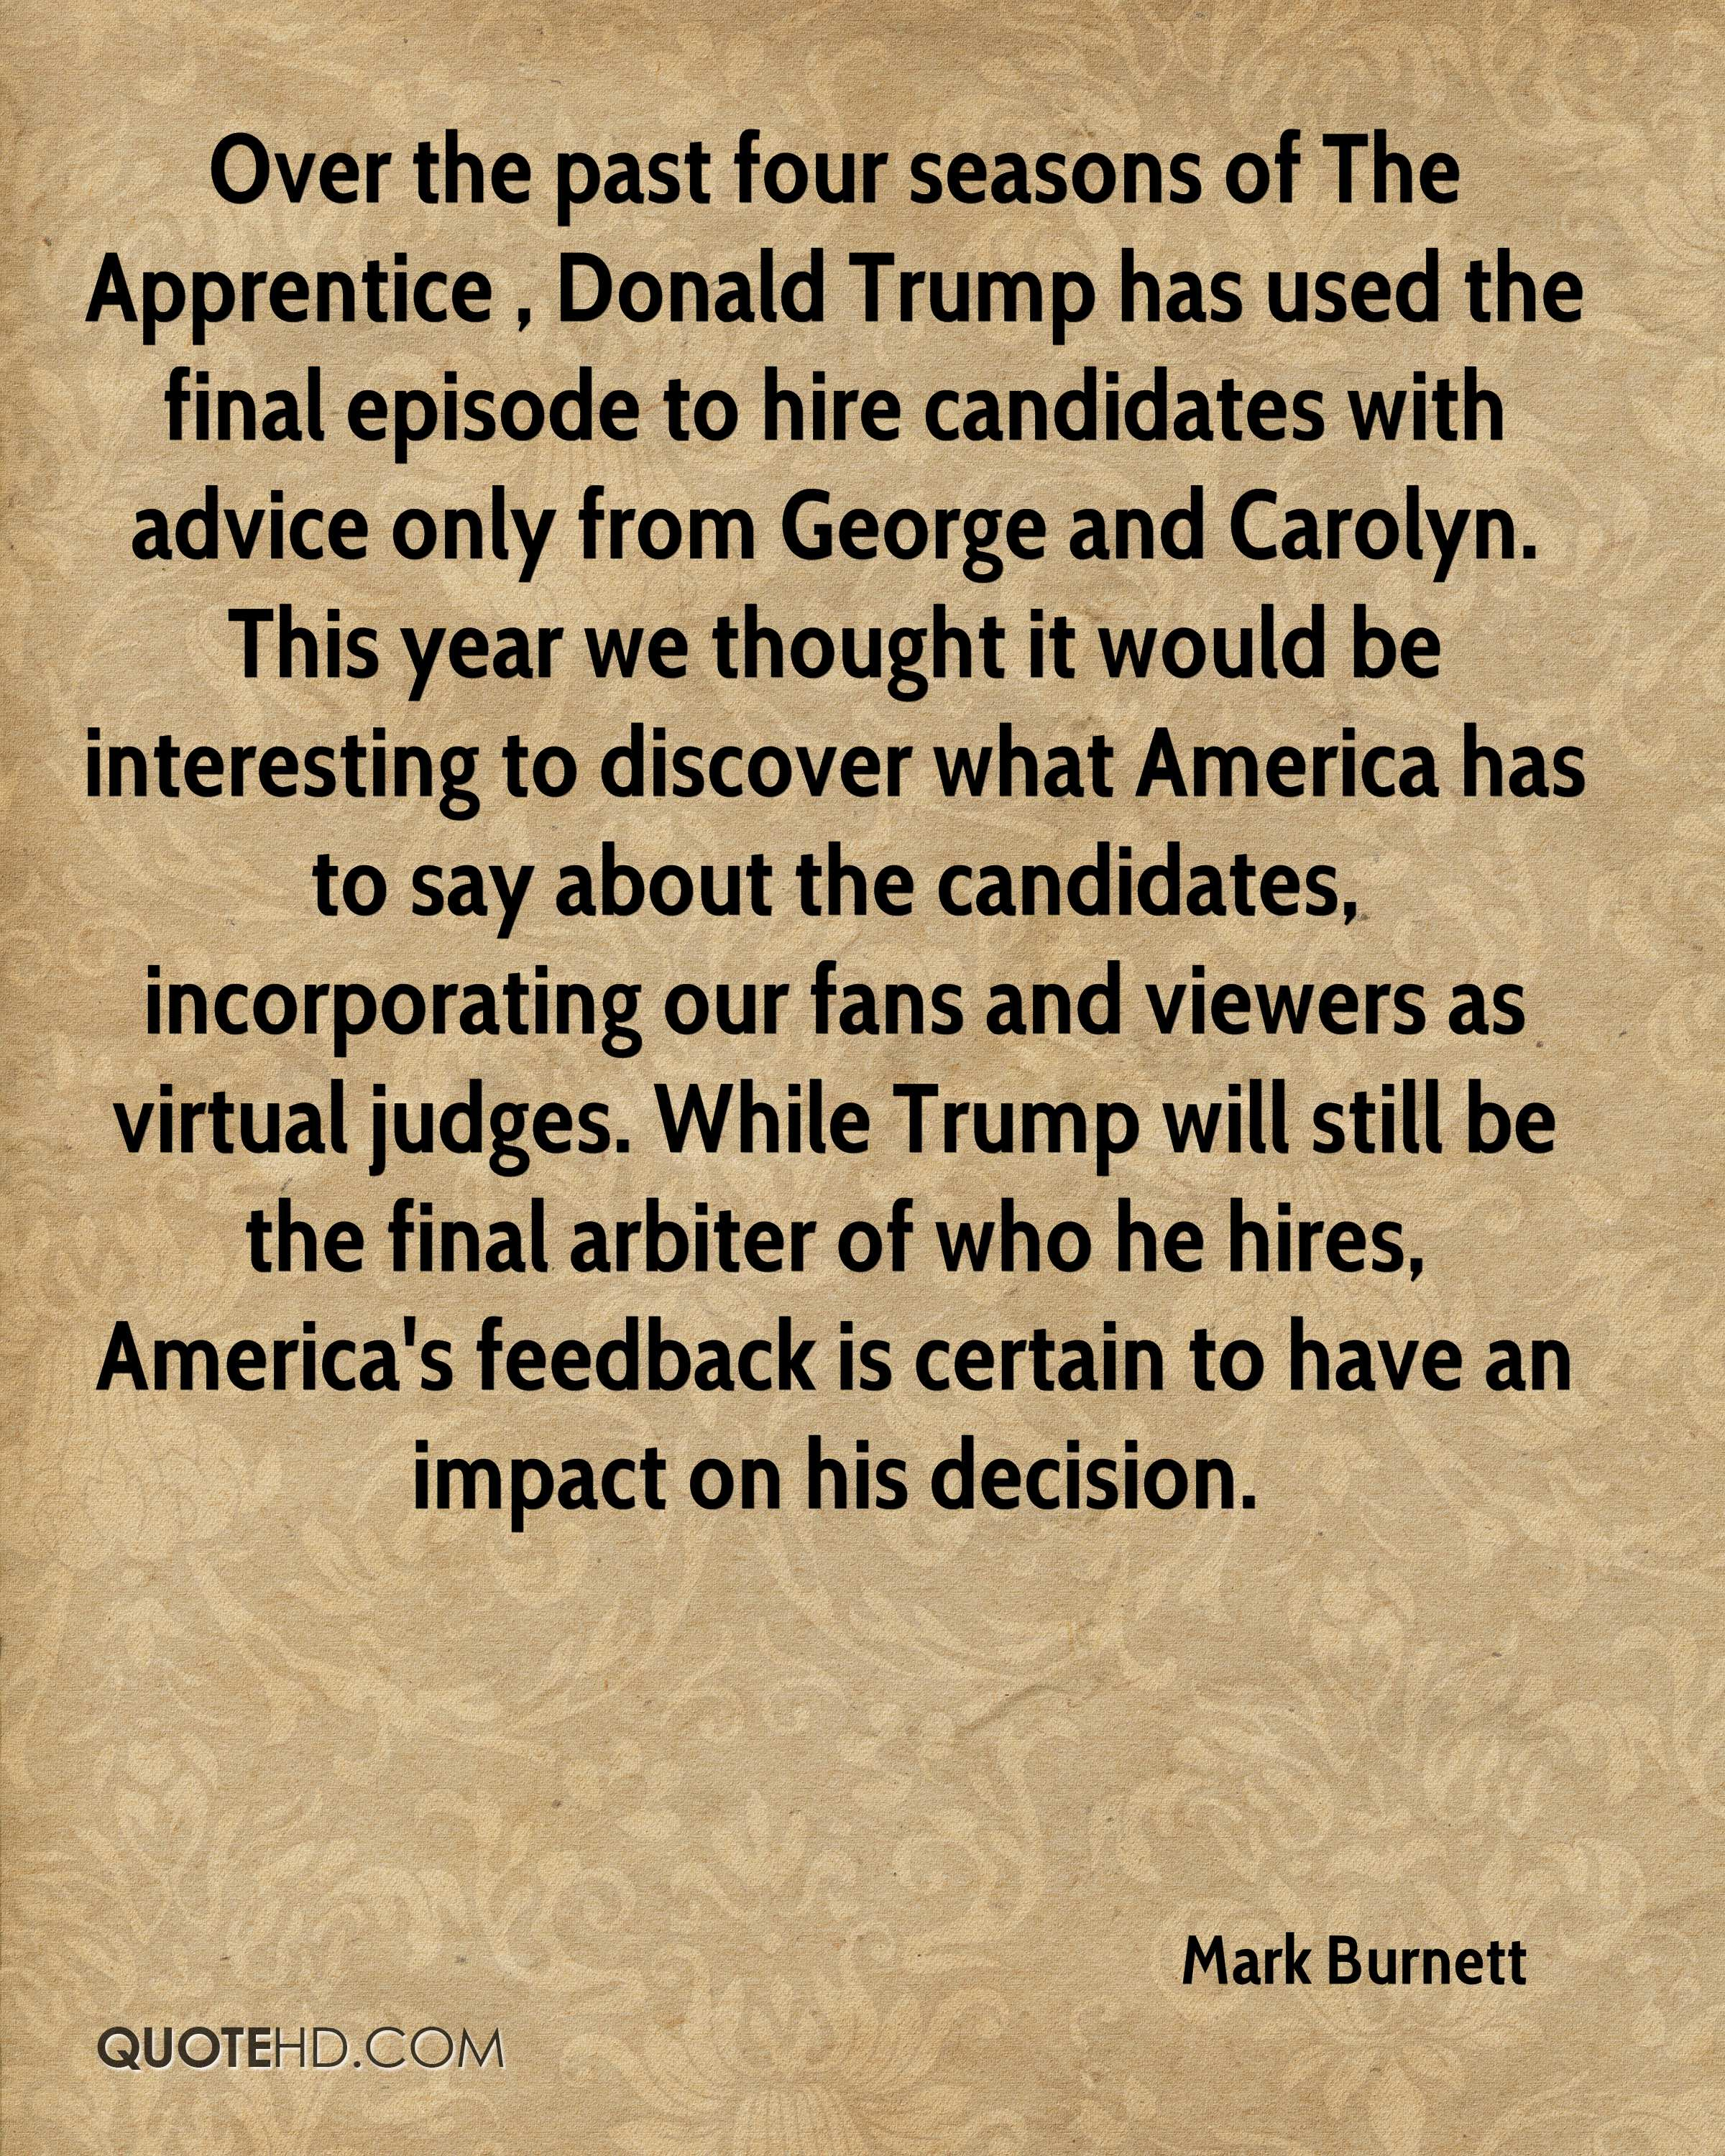 Over the past four seasons of The Apprentice , Donald Trump has used the final episode to hire candidates with advice only from George and Carolyn. This year we thought it would be interesting to discover what America has to say about the candidates, incorporating our fans and viewers as virtual judges. While Trump will still be the final arbiter of who he hires, America's feedback is certain to have an impact on his decision.